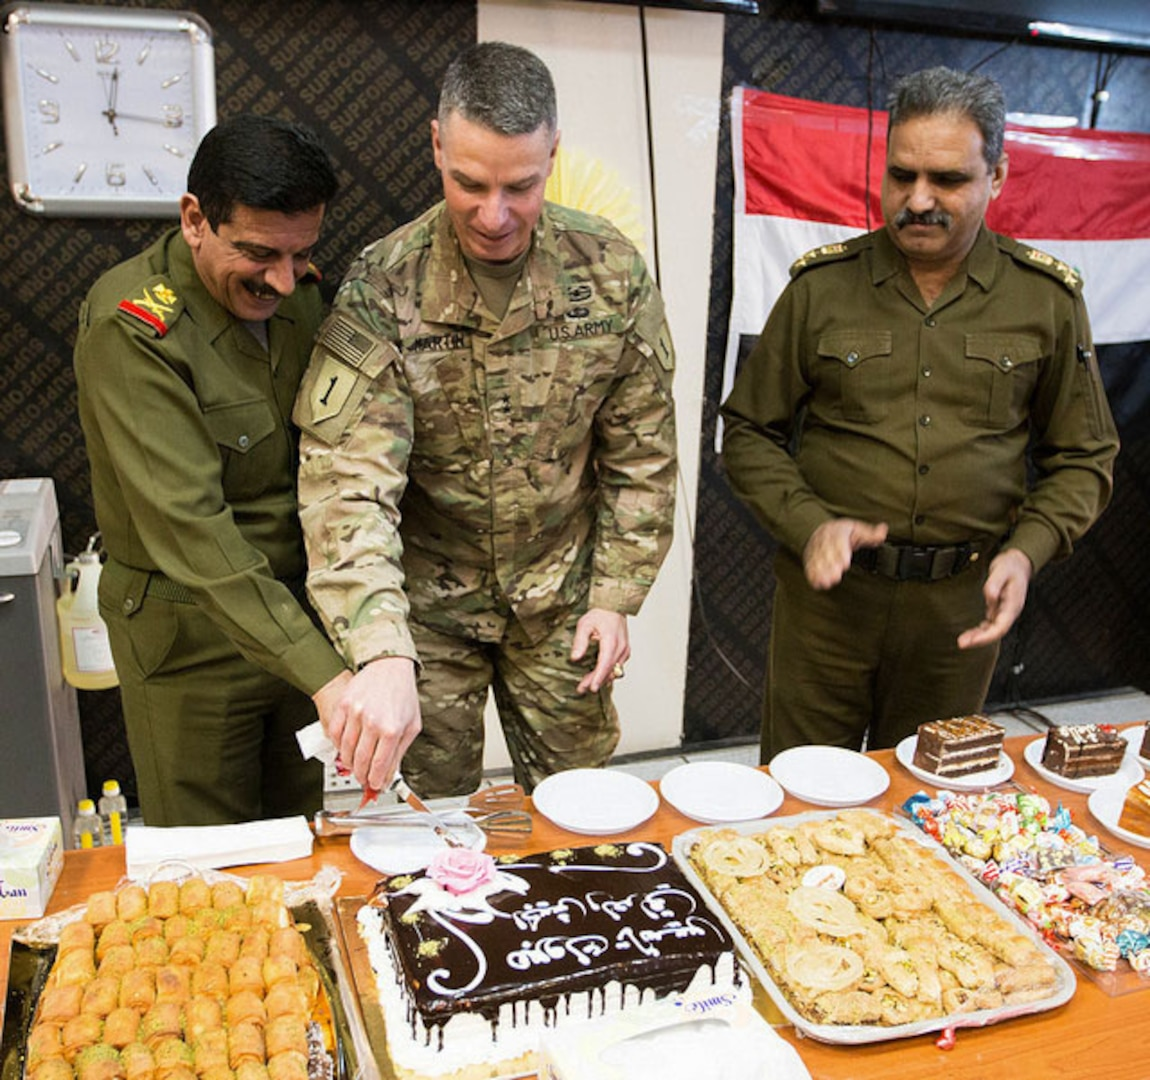 Maj. Gen. Joseph Martin, commanding general, Combined Joint Forces Land Component Command – Operation Inherent Resolve, cuts the Iraqi Armed Forces Day cake with Maj. Gen. Ahmed Abid Al-Nak Said, director, Combined Joint Operation Center – Baghdad, during a celebration Jan. 6, on Union III, Baghdad, Iraq. Iraqi Armed Forces Day commemorates the activation of the Iraqi Army on Jan. 6, 1921. (Photo by U.S. Army Spc. Derrik Tribbey)